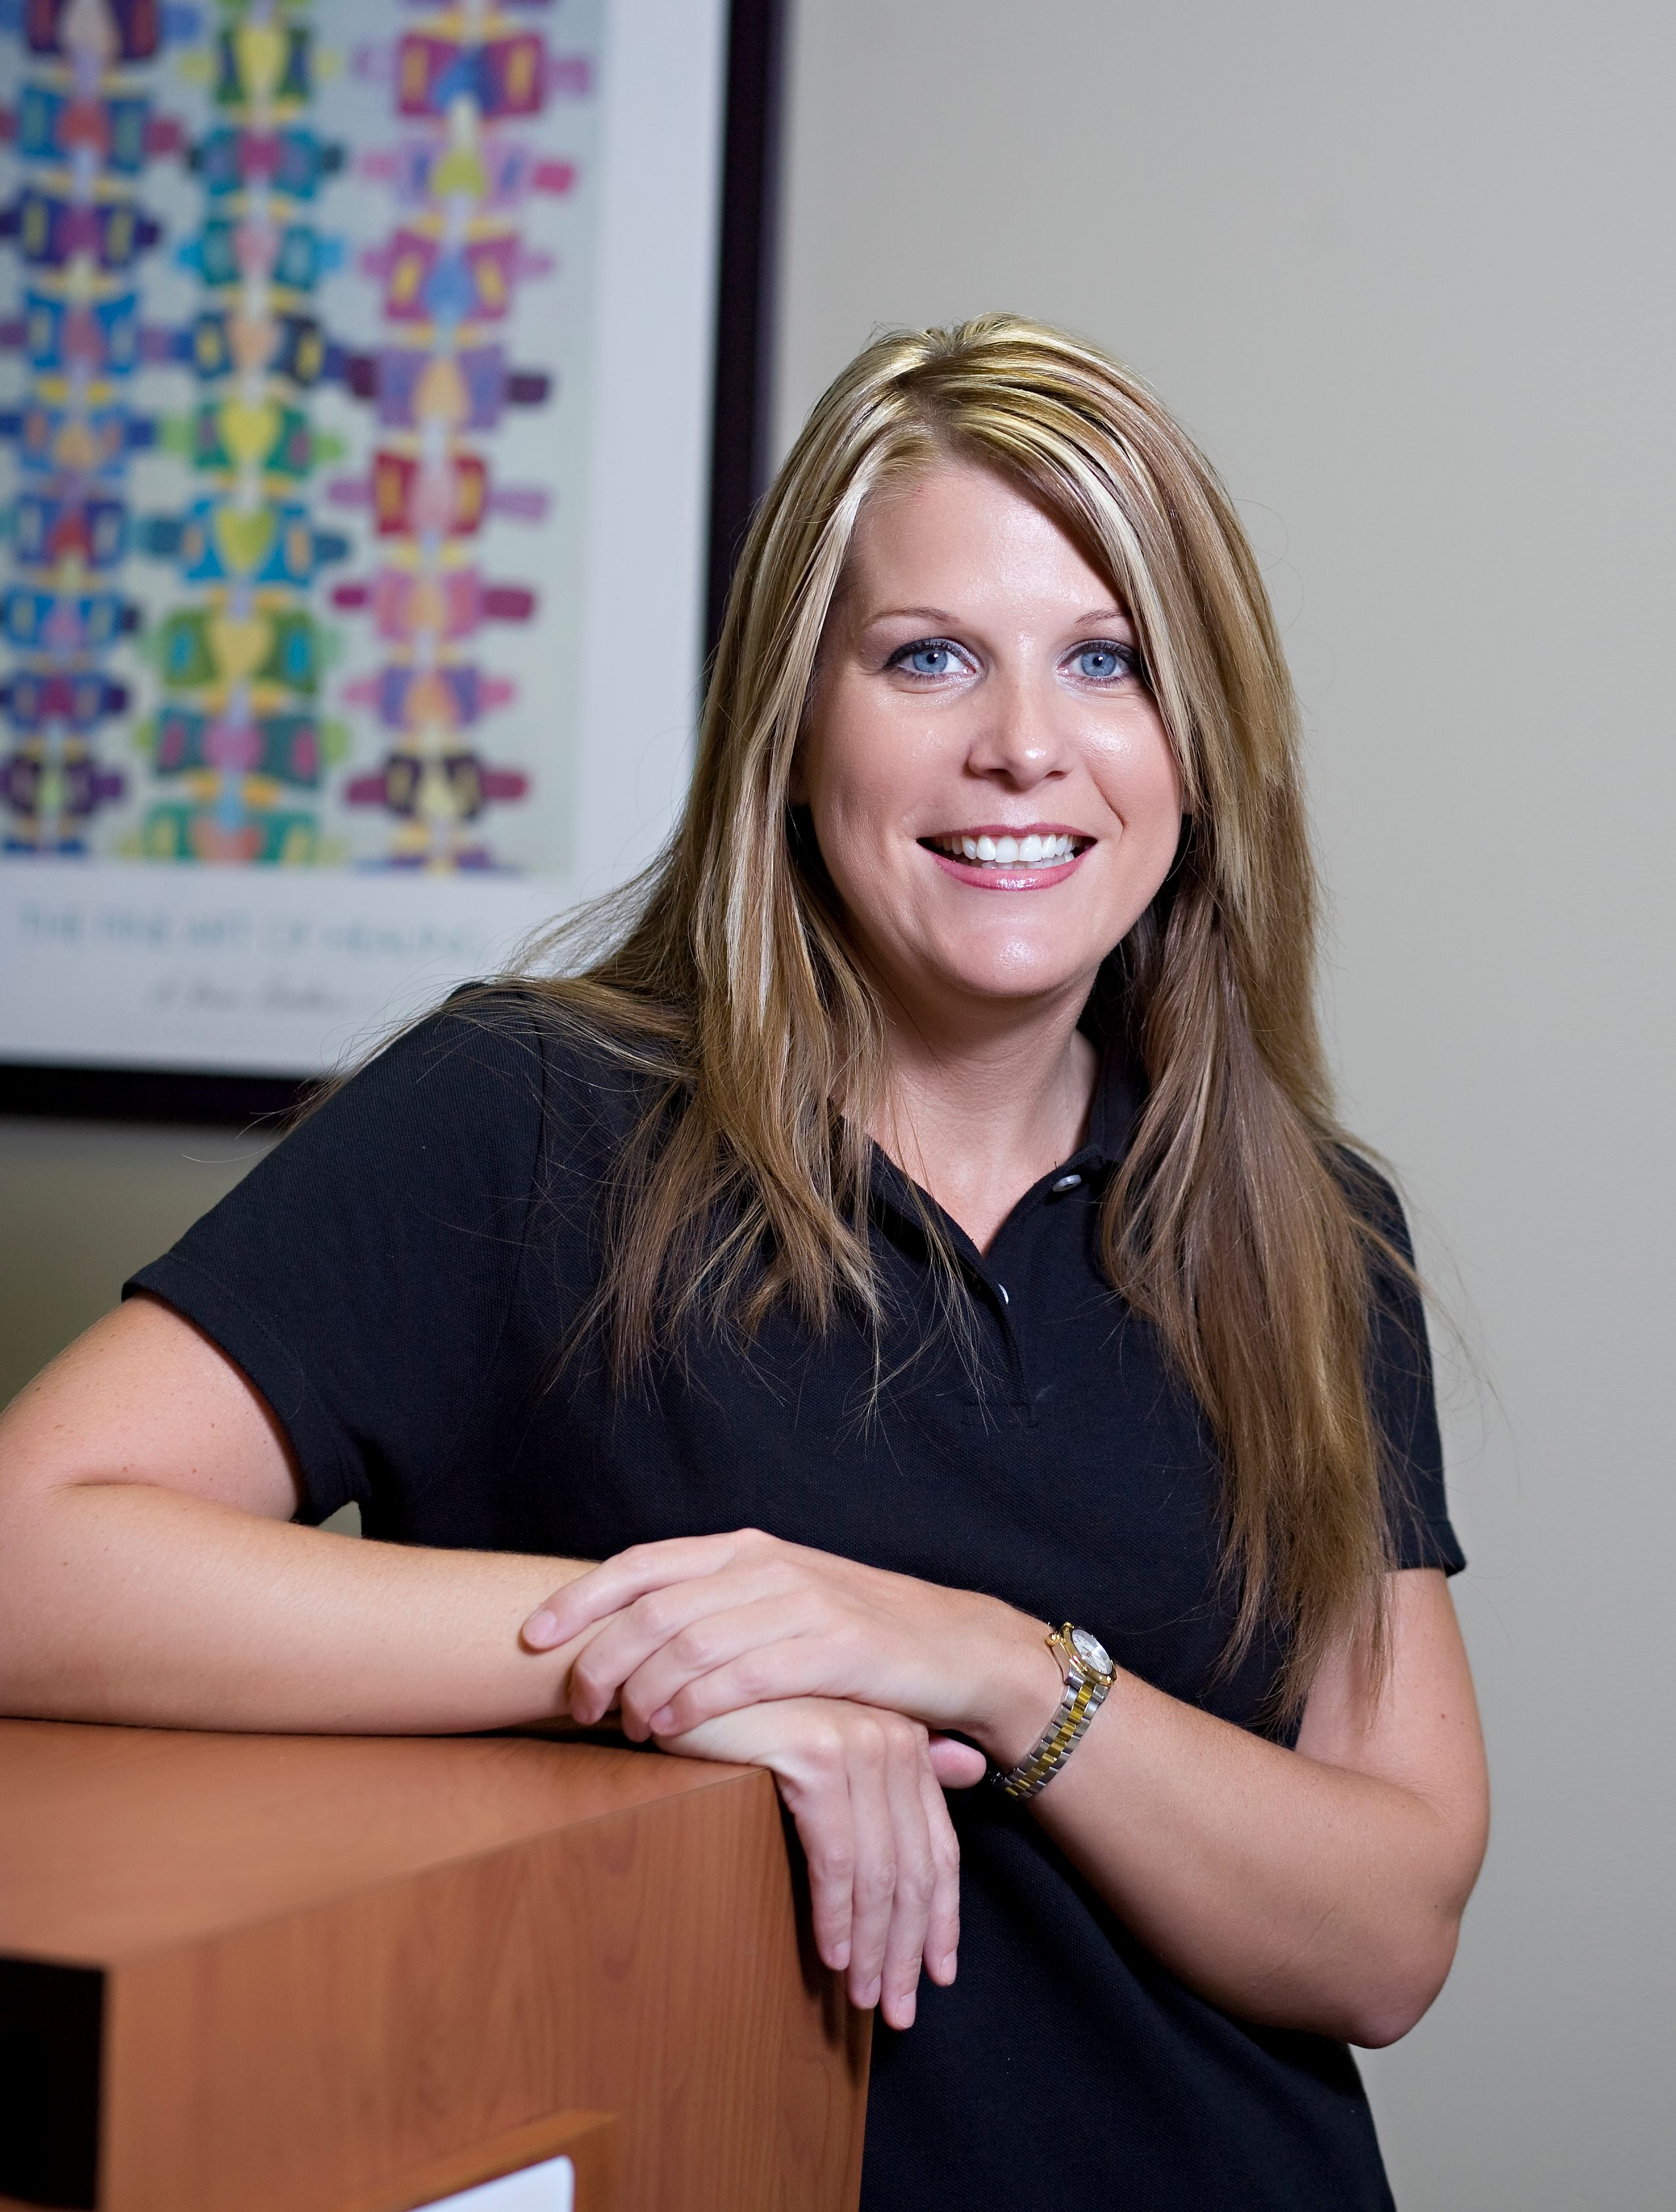 Tara Certified Chiropactic Physicians Assistant